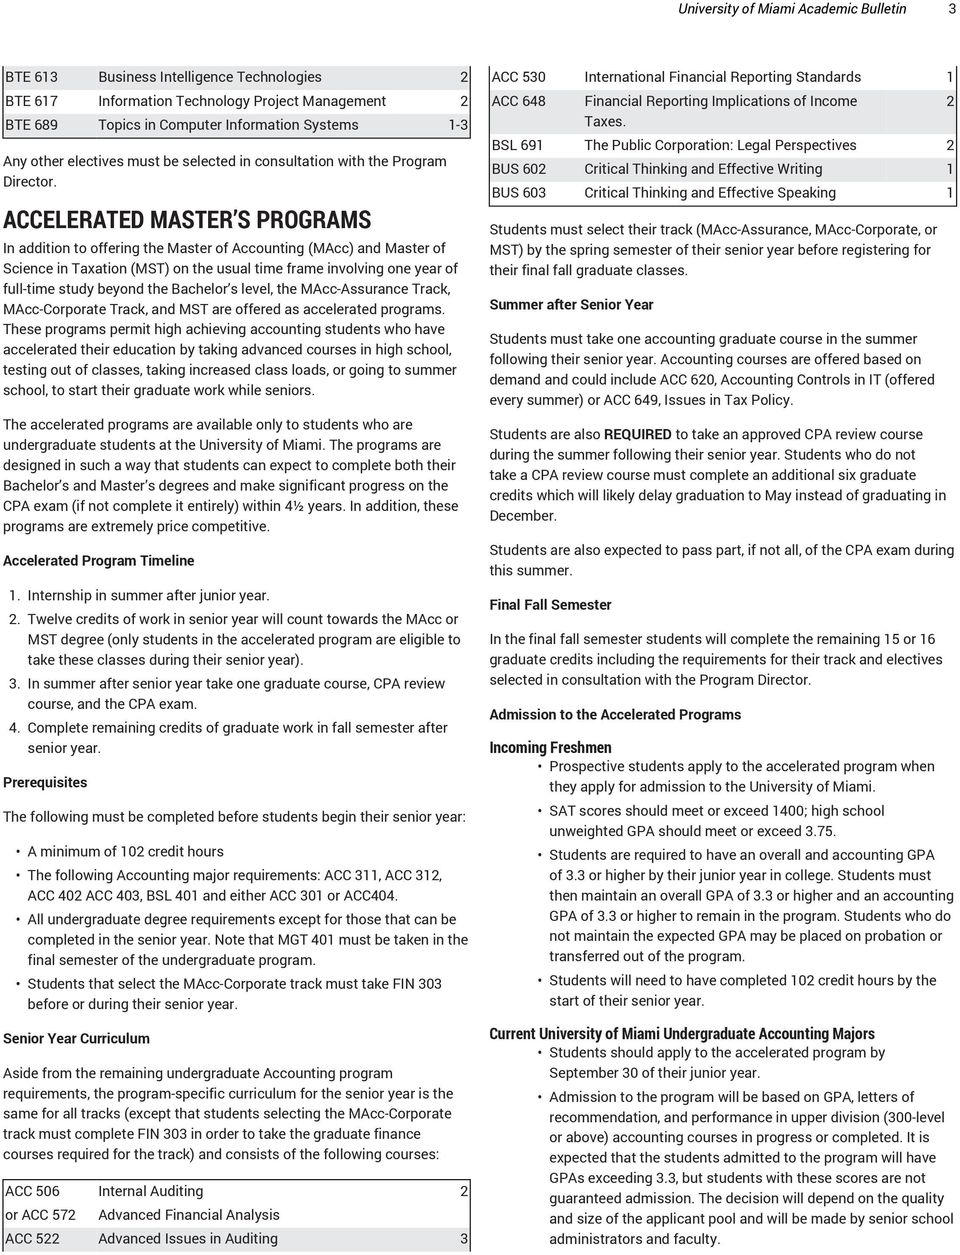 ACCELERATED MASTER S PROGRAMS In addition to offering the Master of Accounting (MAcc) and Master of Science in Taxation (MST) on the usual time frame involving one year of full-time study beyond the